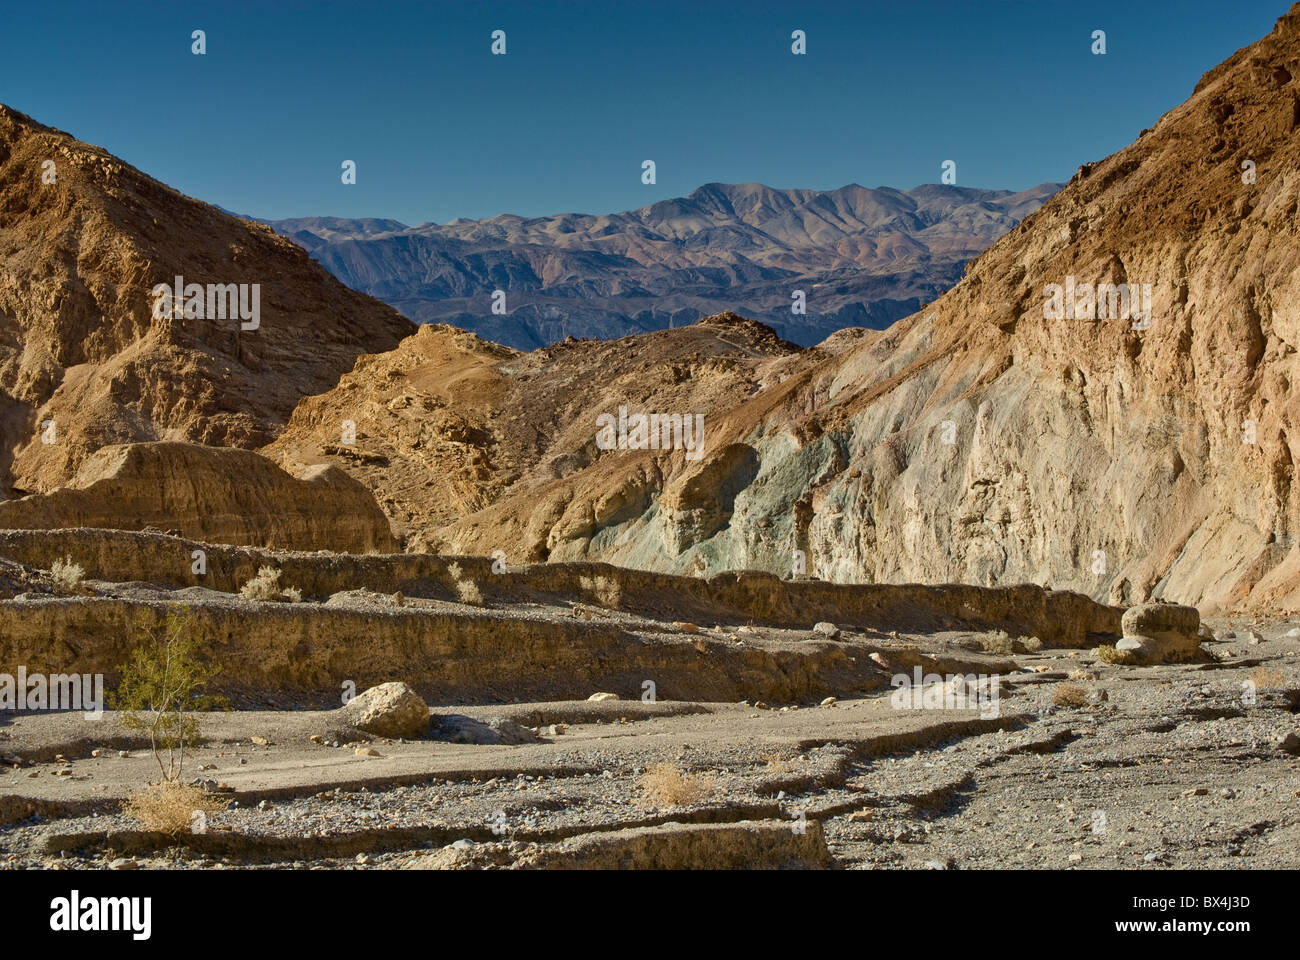 Mosaic Canyon, Cottonwood Mountains in distance, Death Valley, California, USA - Stock Image